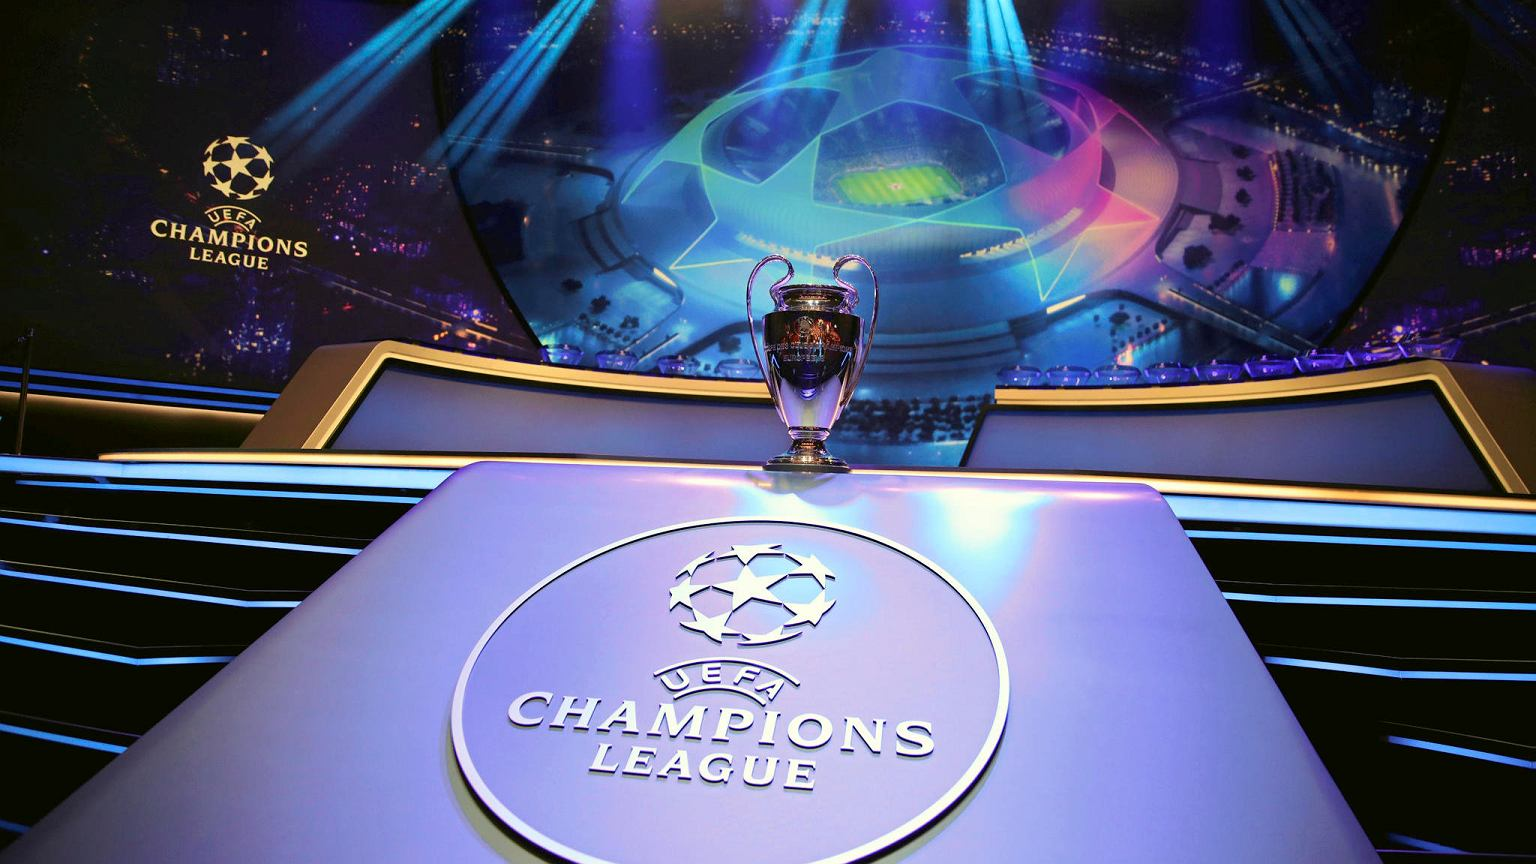 Champions League Cup.